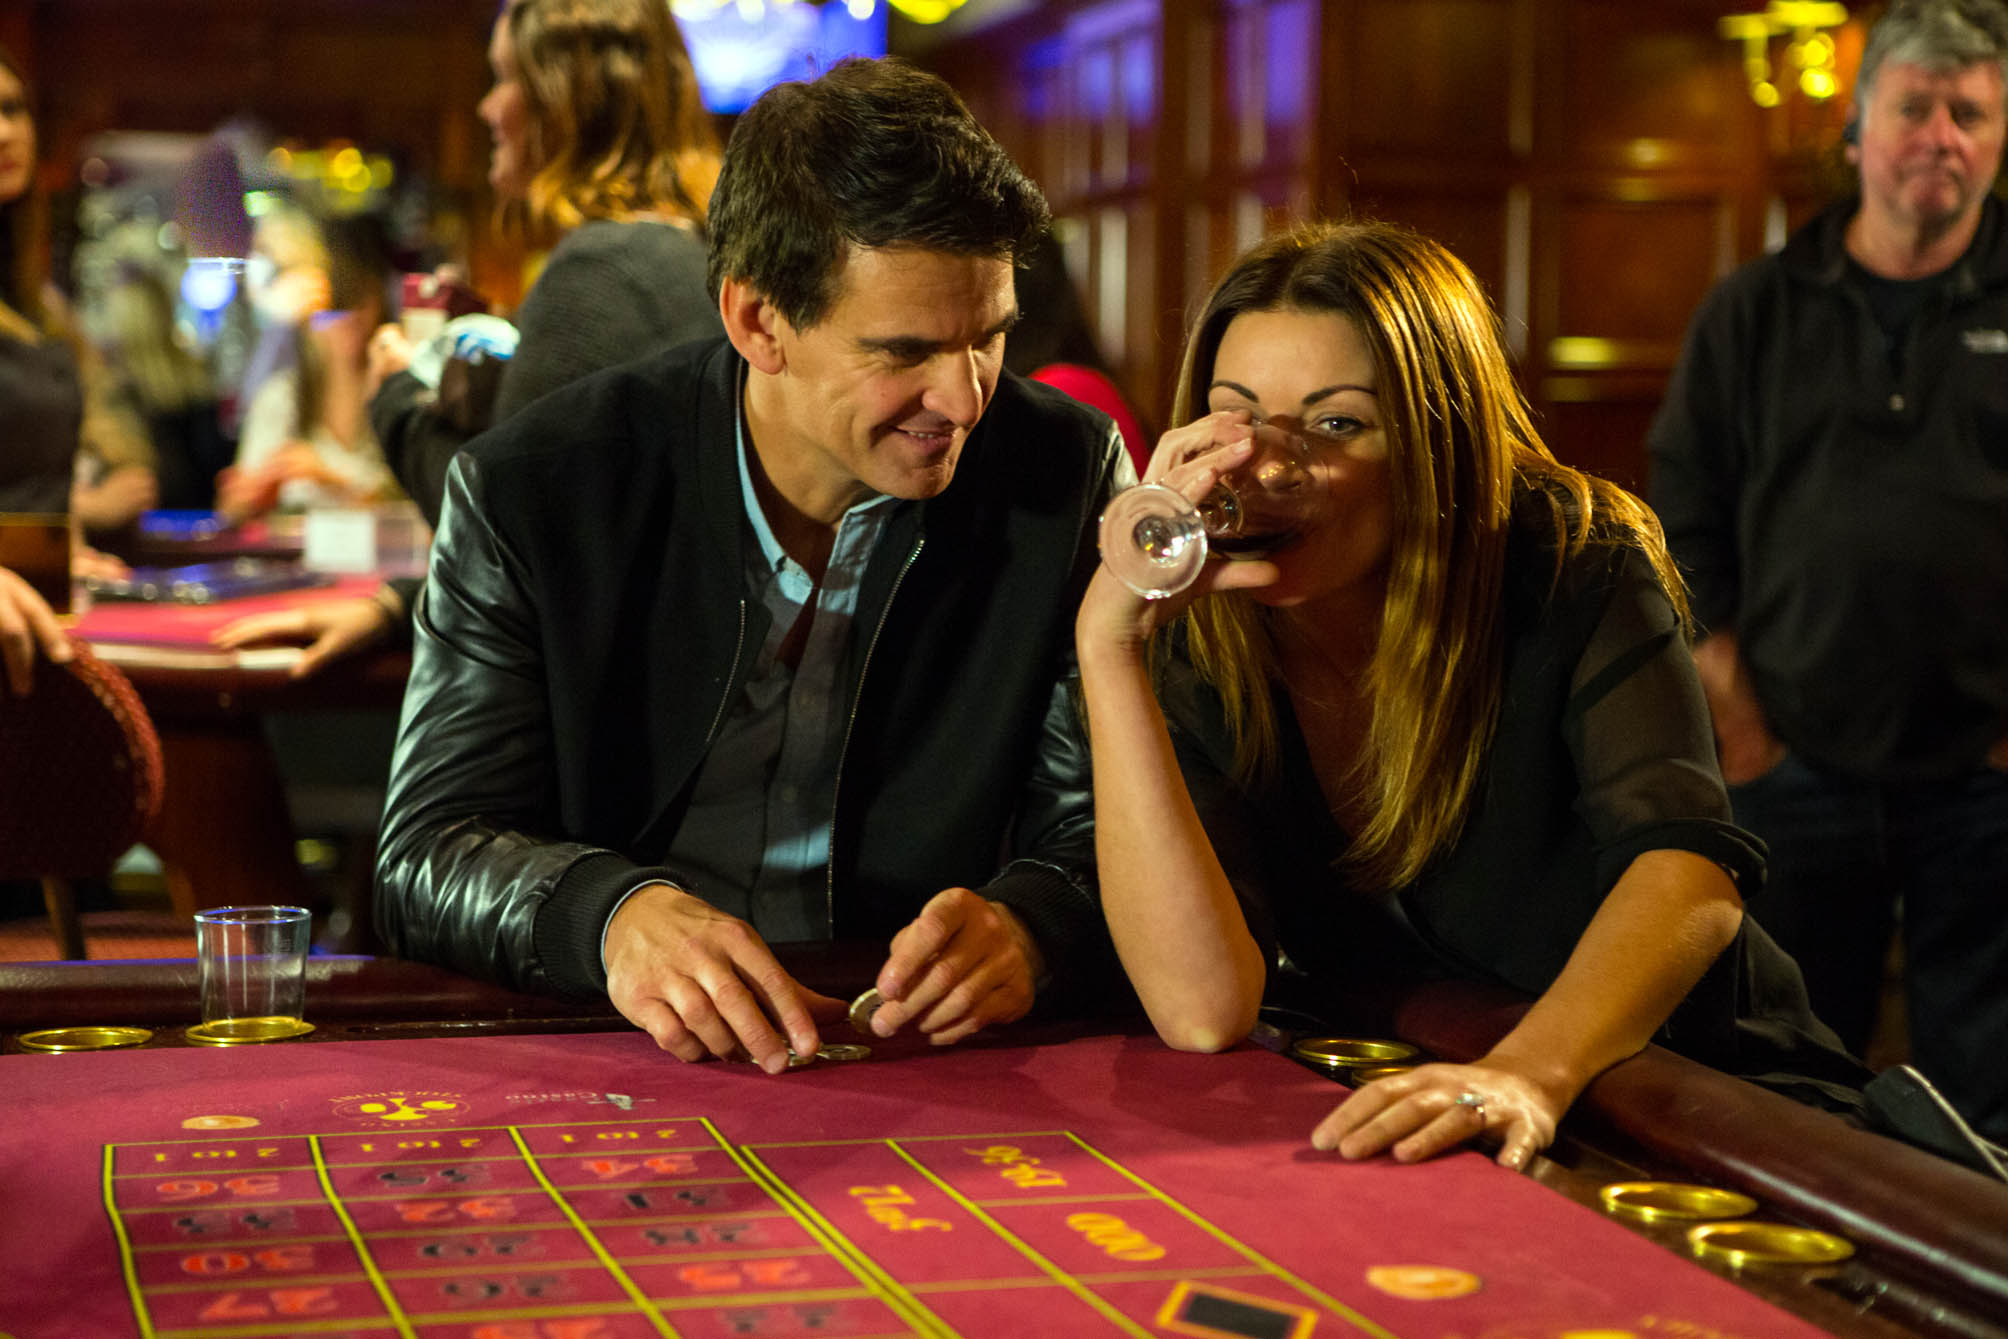 FROM ITV STRICT EMBARGO - Tuesday 15 December 2015 Coronation Street - Ep 8807 Friday 1 January 2016 - 1st EP Immersing herself in a game of roulette, Carla Connor [ALISON KING] is surprised when Robert Preston [TRISTAN GEMMILL], still cut up over Tracy, enters the casino and joins her at the table. Having won a small fortune, Robert and Carla celebrate with a drink. On a high, Robert suggests they take the champagne to a bedroom, will Carla agree? Picture desk contact - david.crook@itv.com Photographer - Mark Bruce This photograph is (C) ITV Plc and can only be reproduced for editorial purposes directly in connection with the programme or event mentioned above, or ITV plc. Once made available by ITV plc Picture Desk, this photograph can be reproduced once only up until the transmission [TX] date and no reproduction fee will be charged. Any subsequent usage may incur a fee. This photograph must not be manipulated [excluding basic cropping] in a manner which alters the visual appearance of the person photographed deemed detrimental or inappropriate by ITV plc Picture Desk. This photograph must not be syndicated to any other company, publication or website, or permanently archived, without the express written permission of ITV Plc Picture Desk. Full Terms and conditions are available on the website www.itvpictures.com